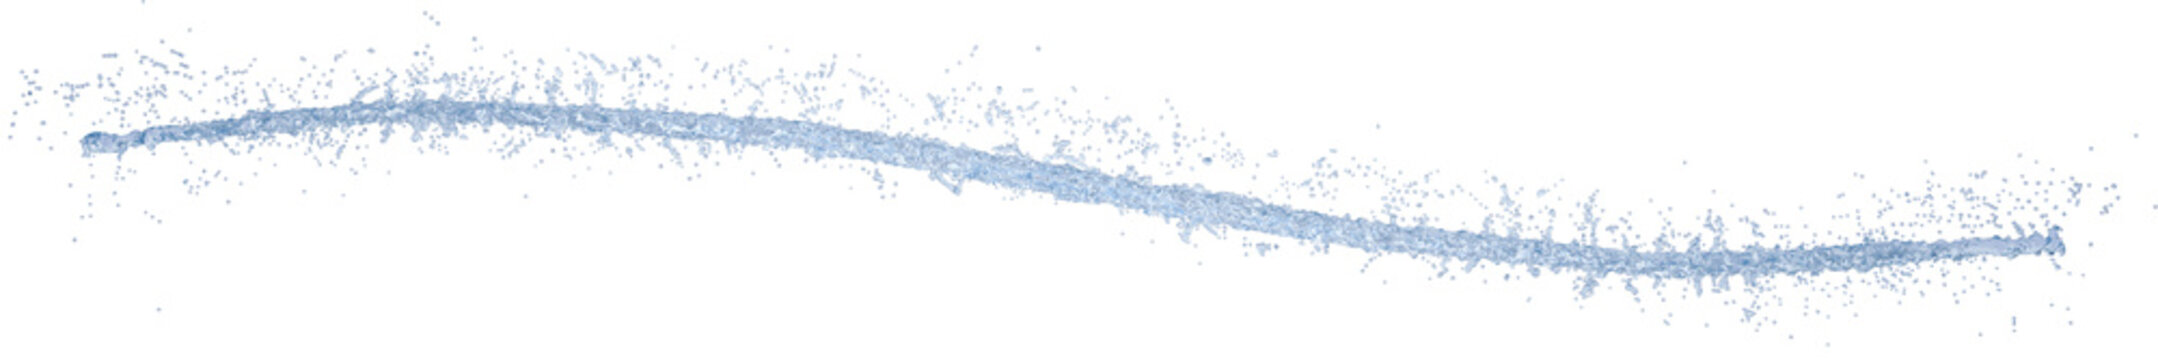 Long thin light blue curved jet of water with many small drops isolated on white background. 3D illustration